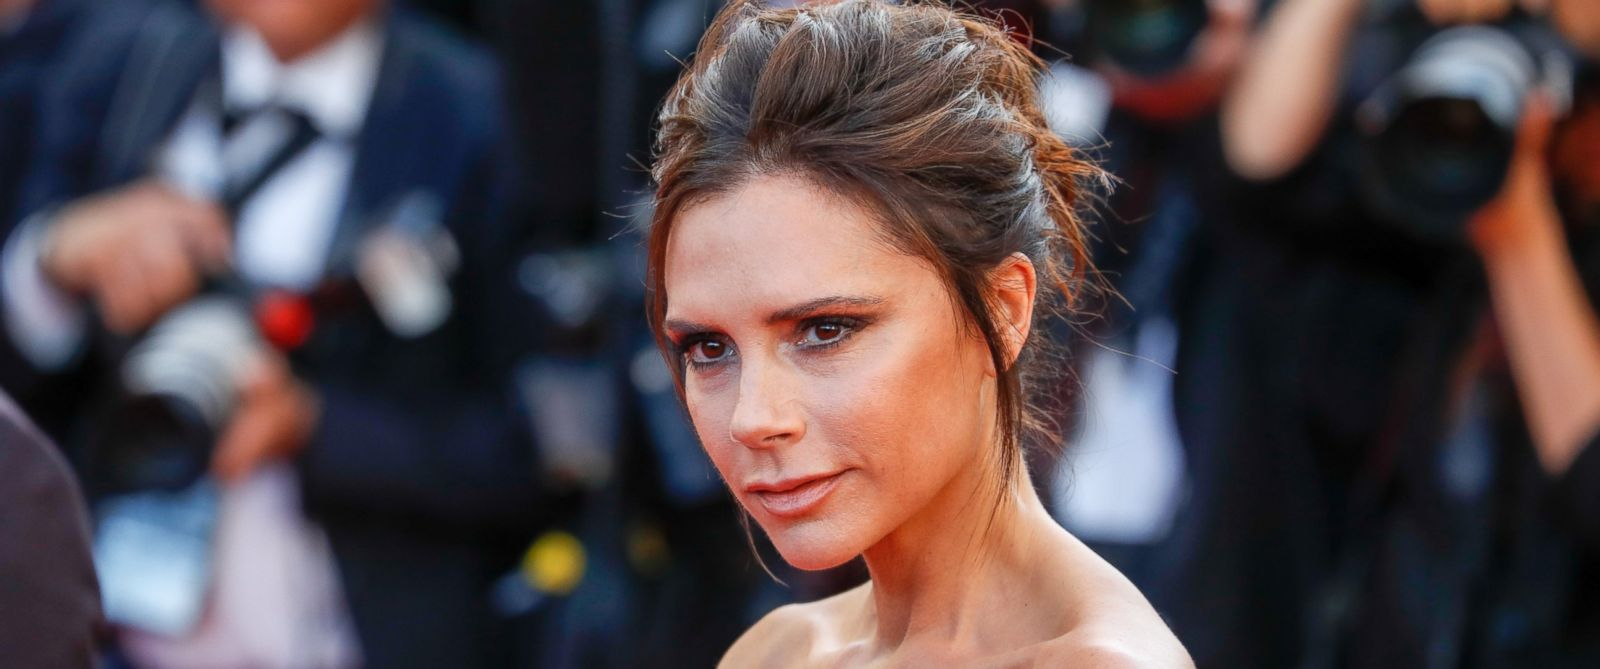 """PHOTO: Victoria Beckham attends the screening of """"Cafe Society"""" at the opening gala of the annual 69th Cannes Film Festival at Palais des Festivals on May 11, 2016 in Cannes, France."""